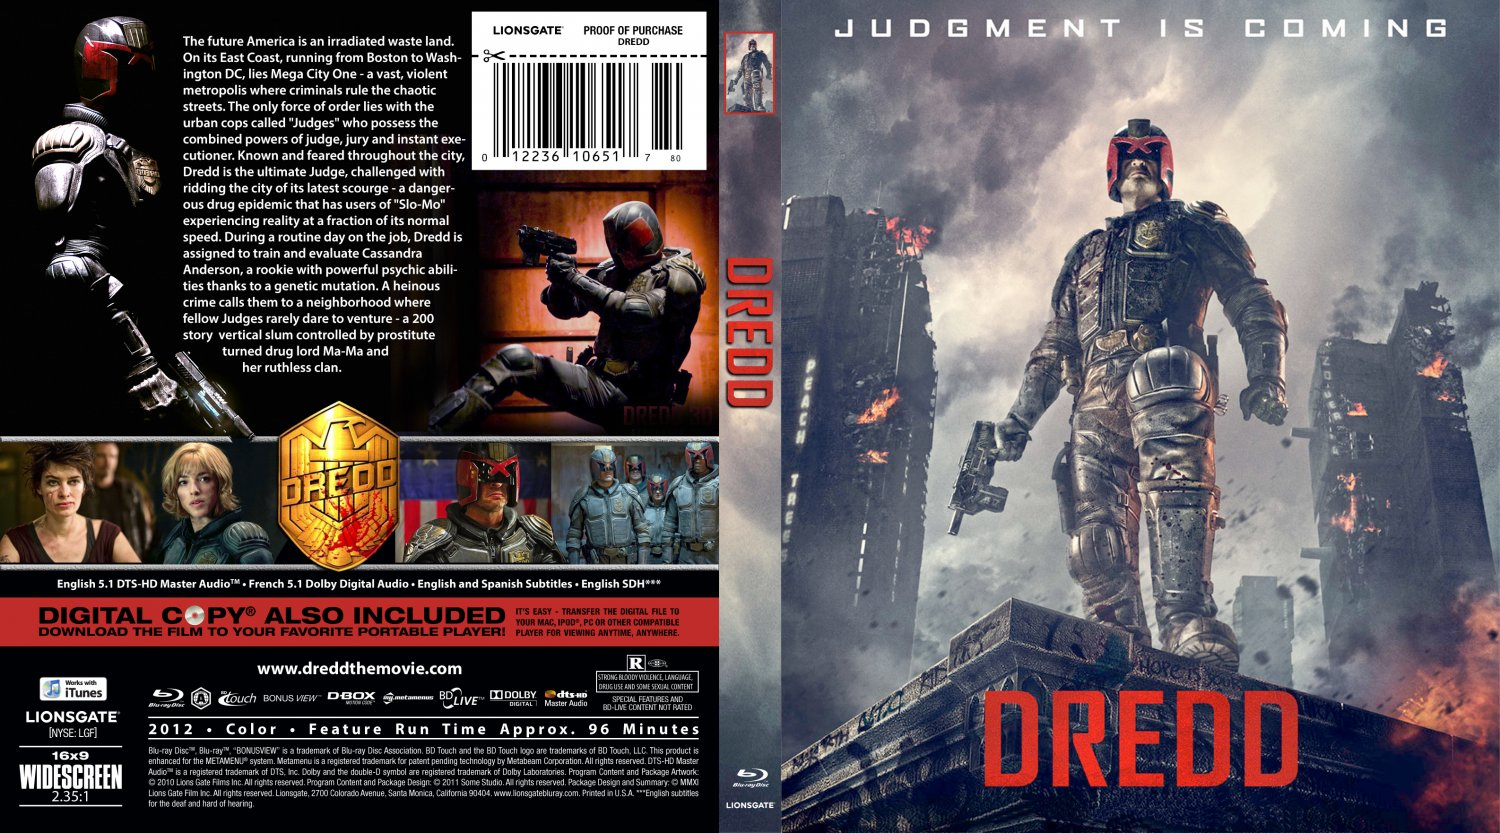 dredd movie blu ray custom covers dredd br dvd covers. Black Bedroom Furniture Sets. Home Design Ideas